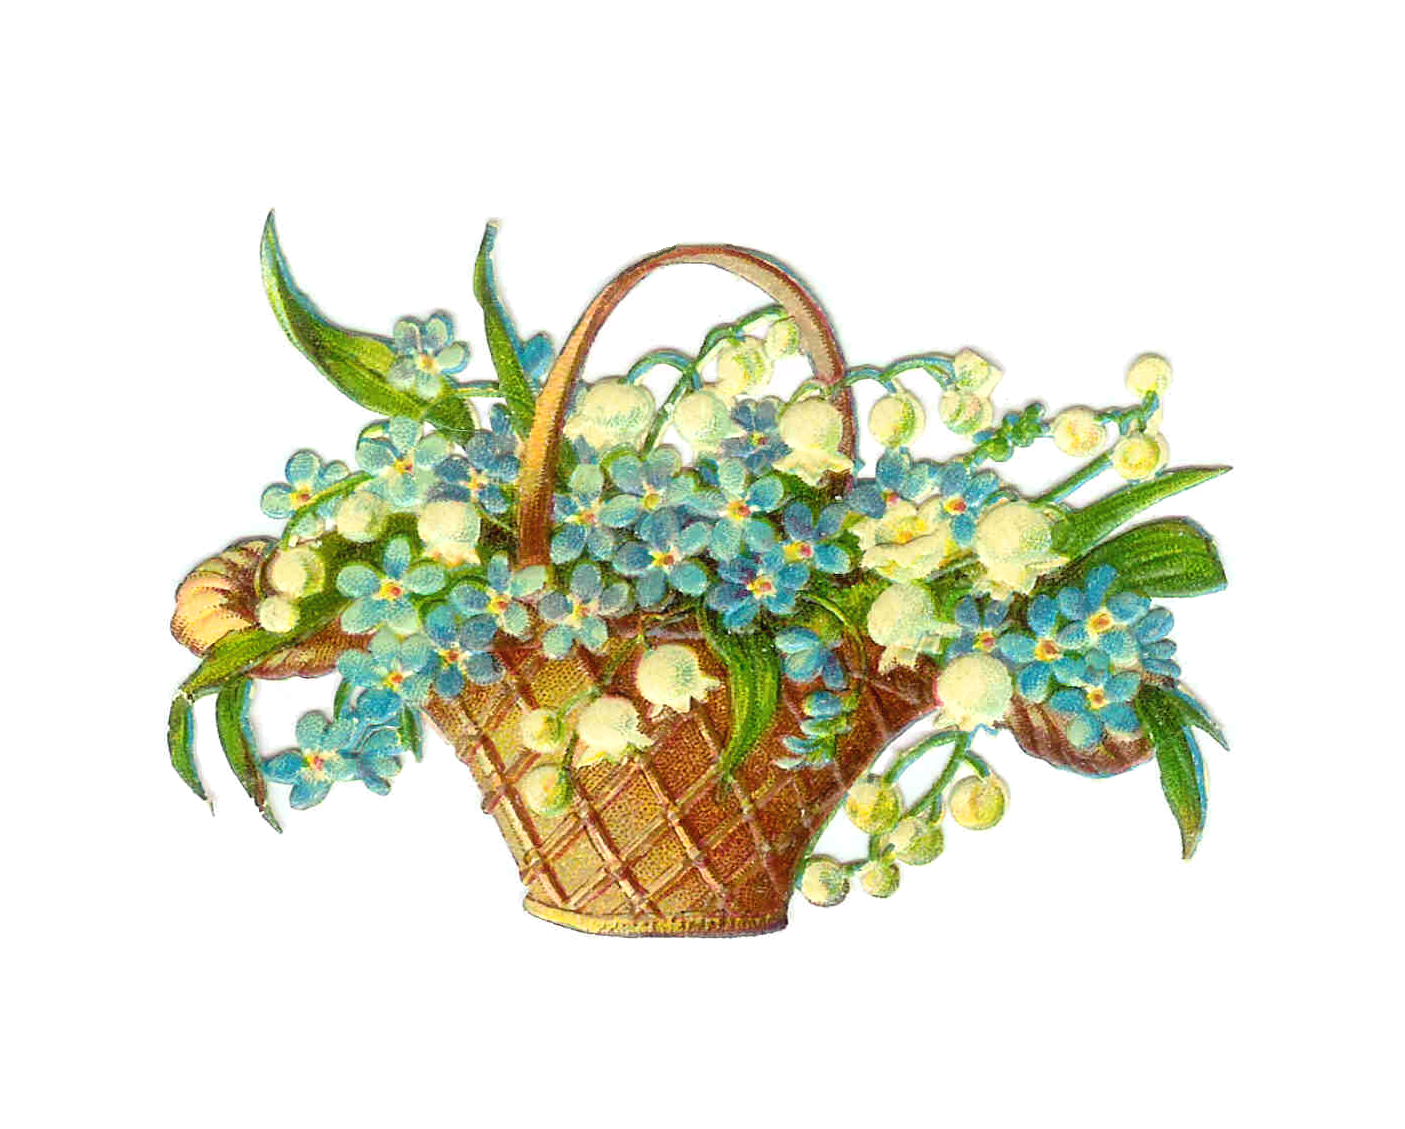 Easter clipart flower png clipart black and white download Easter Flower PNG Transparent Images | Free Download Clip Art ... clipart black and white download